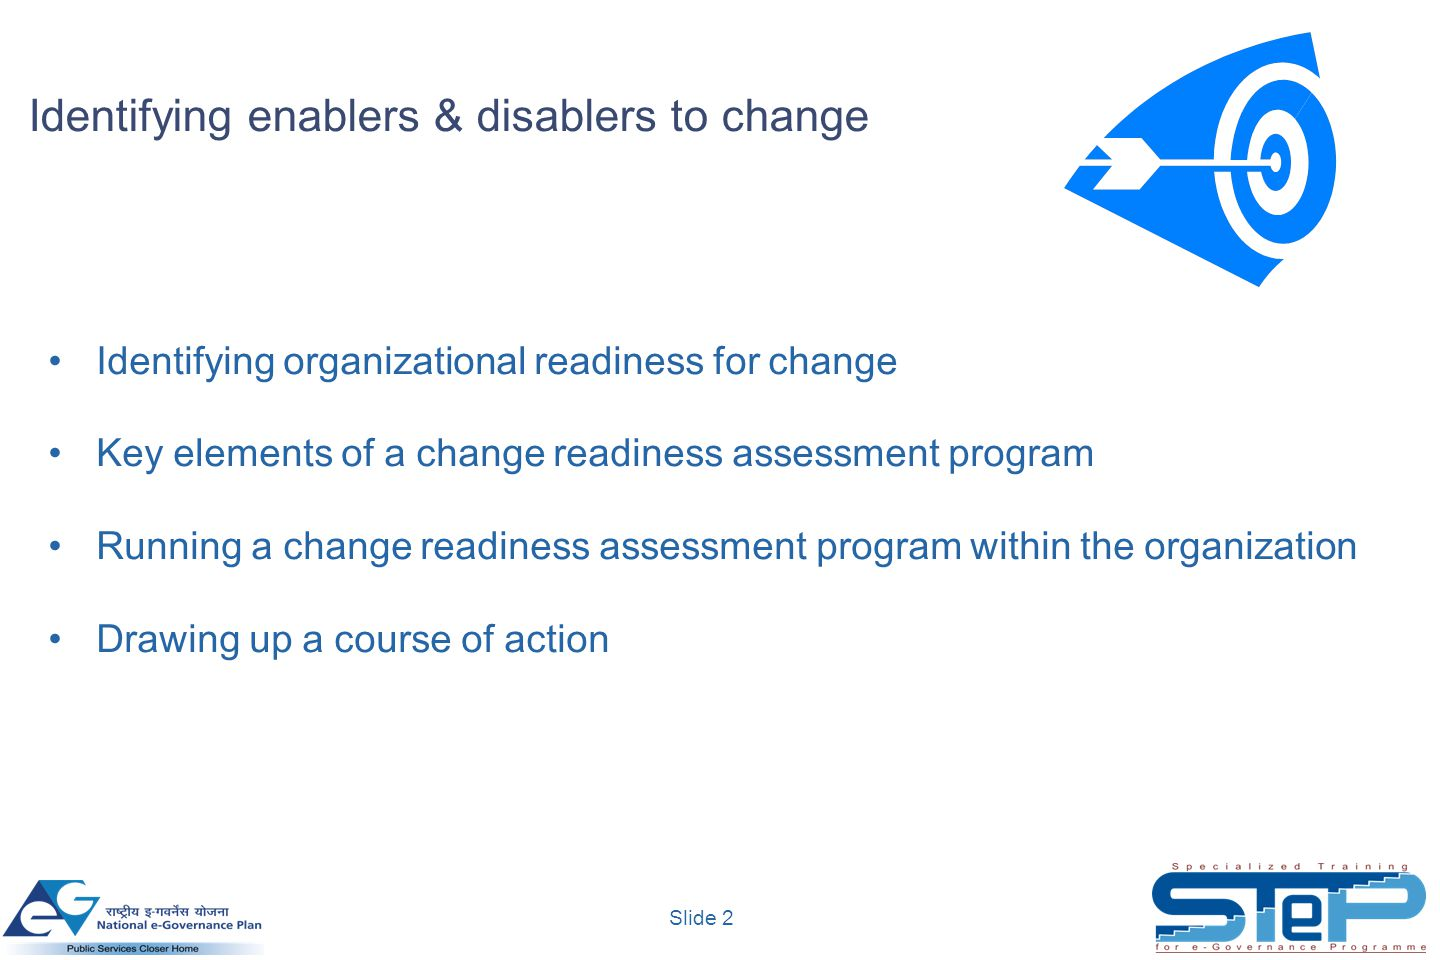 Identifying Enablers Amp Disablers To Change